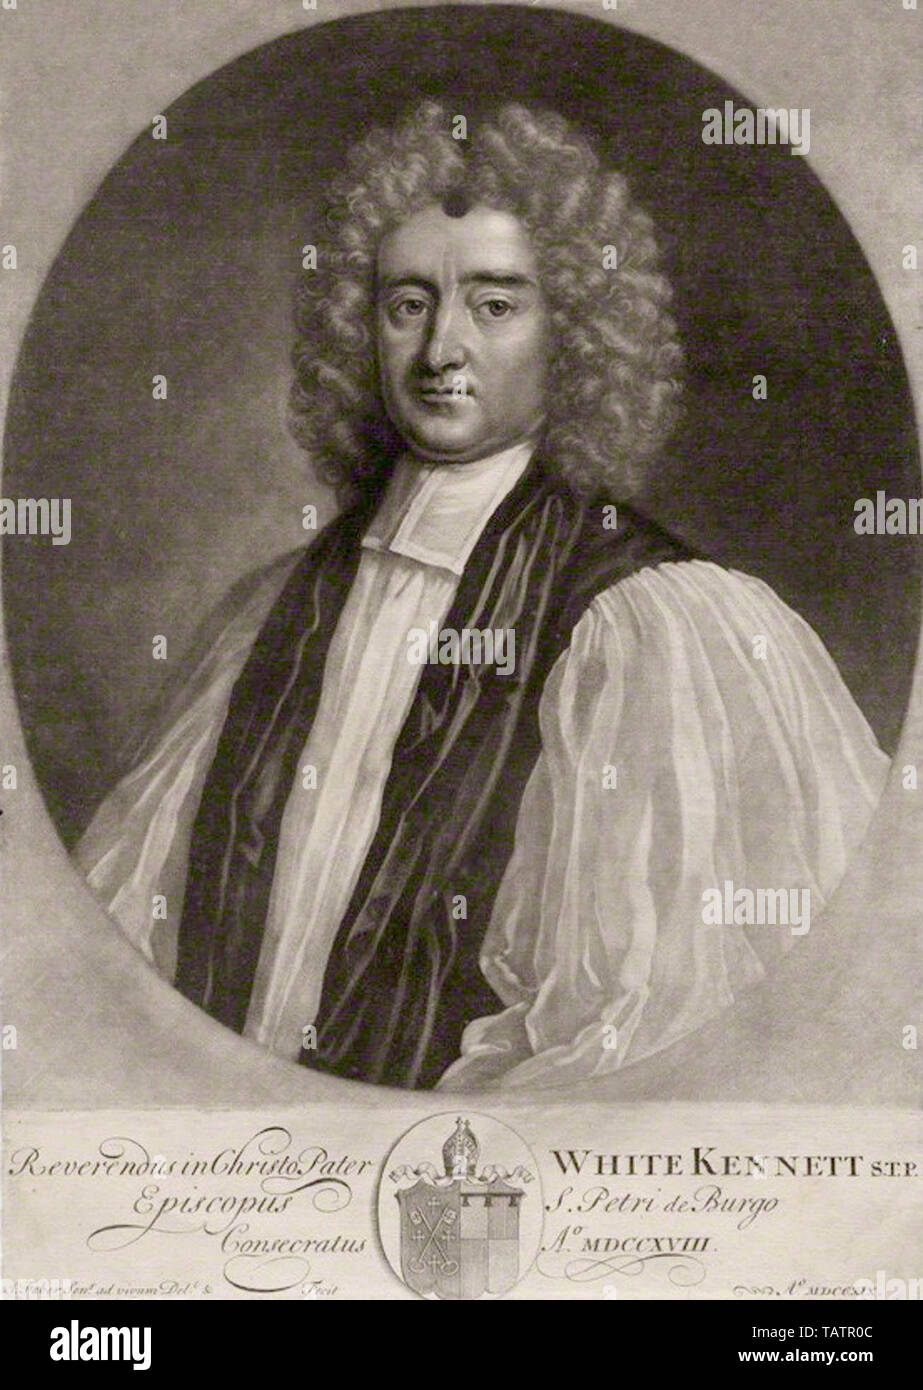 White Kennett (10 August 1660 – 19 December 1728) was an English bishop and antiquarian. He was educated at Westminster School and at St Edmund Hall, Oxford, where, while an undergraduate, he published several translations of Latin works, including Erasmus' In Praise of Folly. - Stock Image